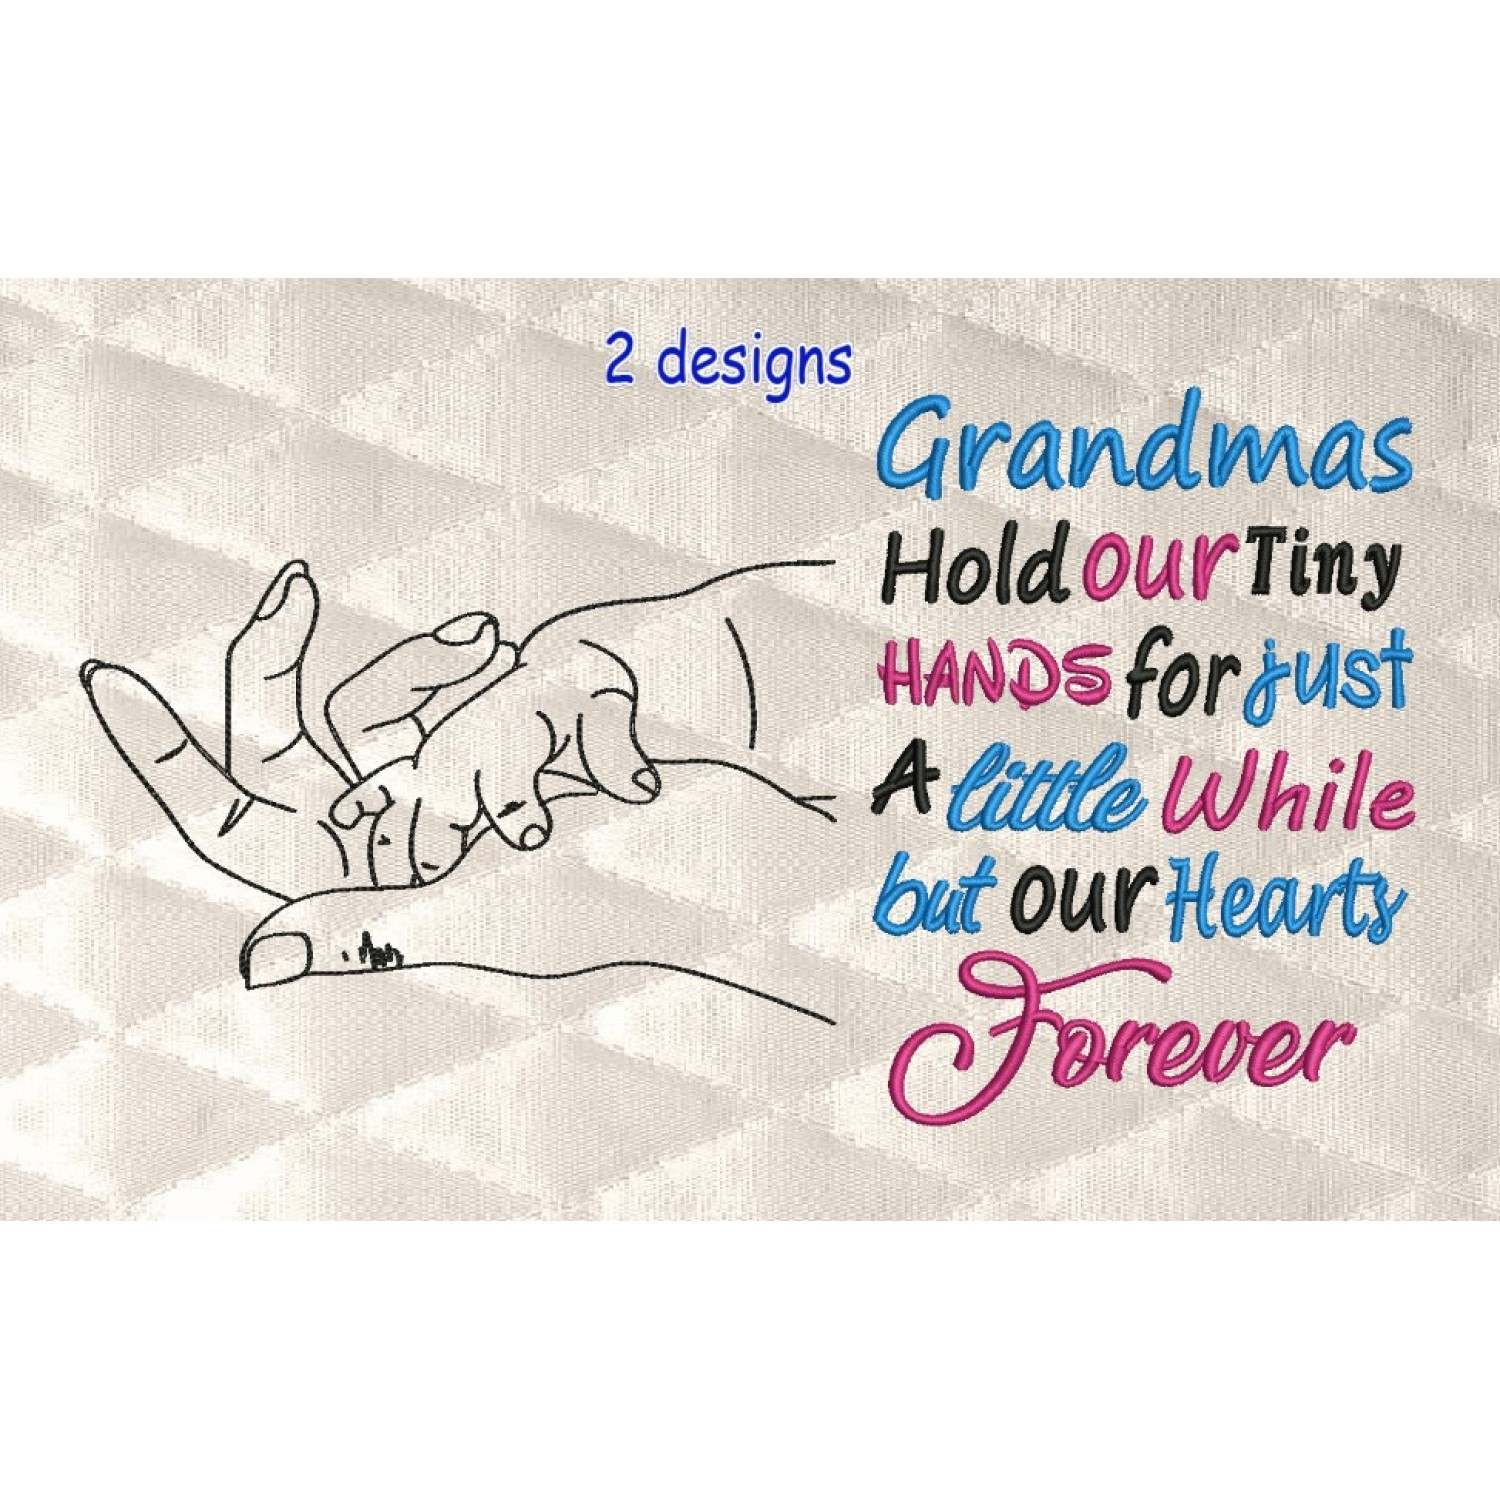 hands line with Grandmas 2 designs 3 sizes